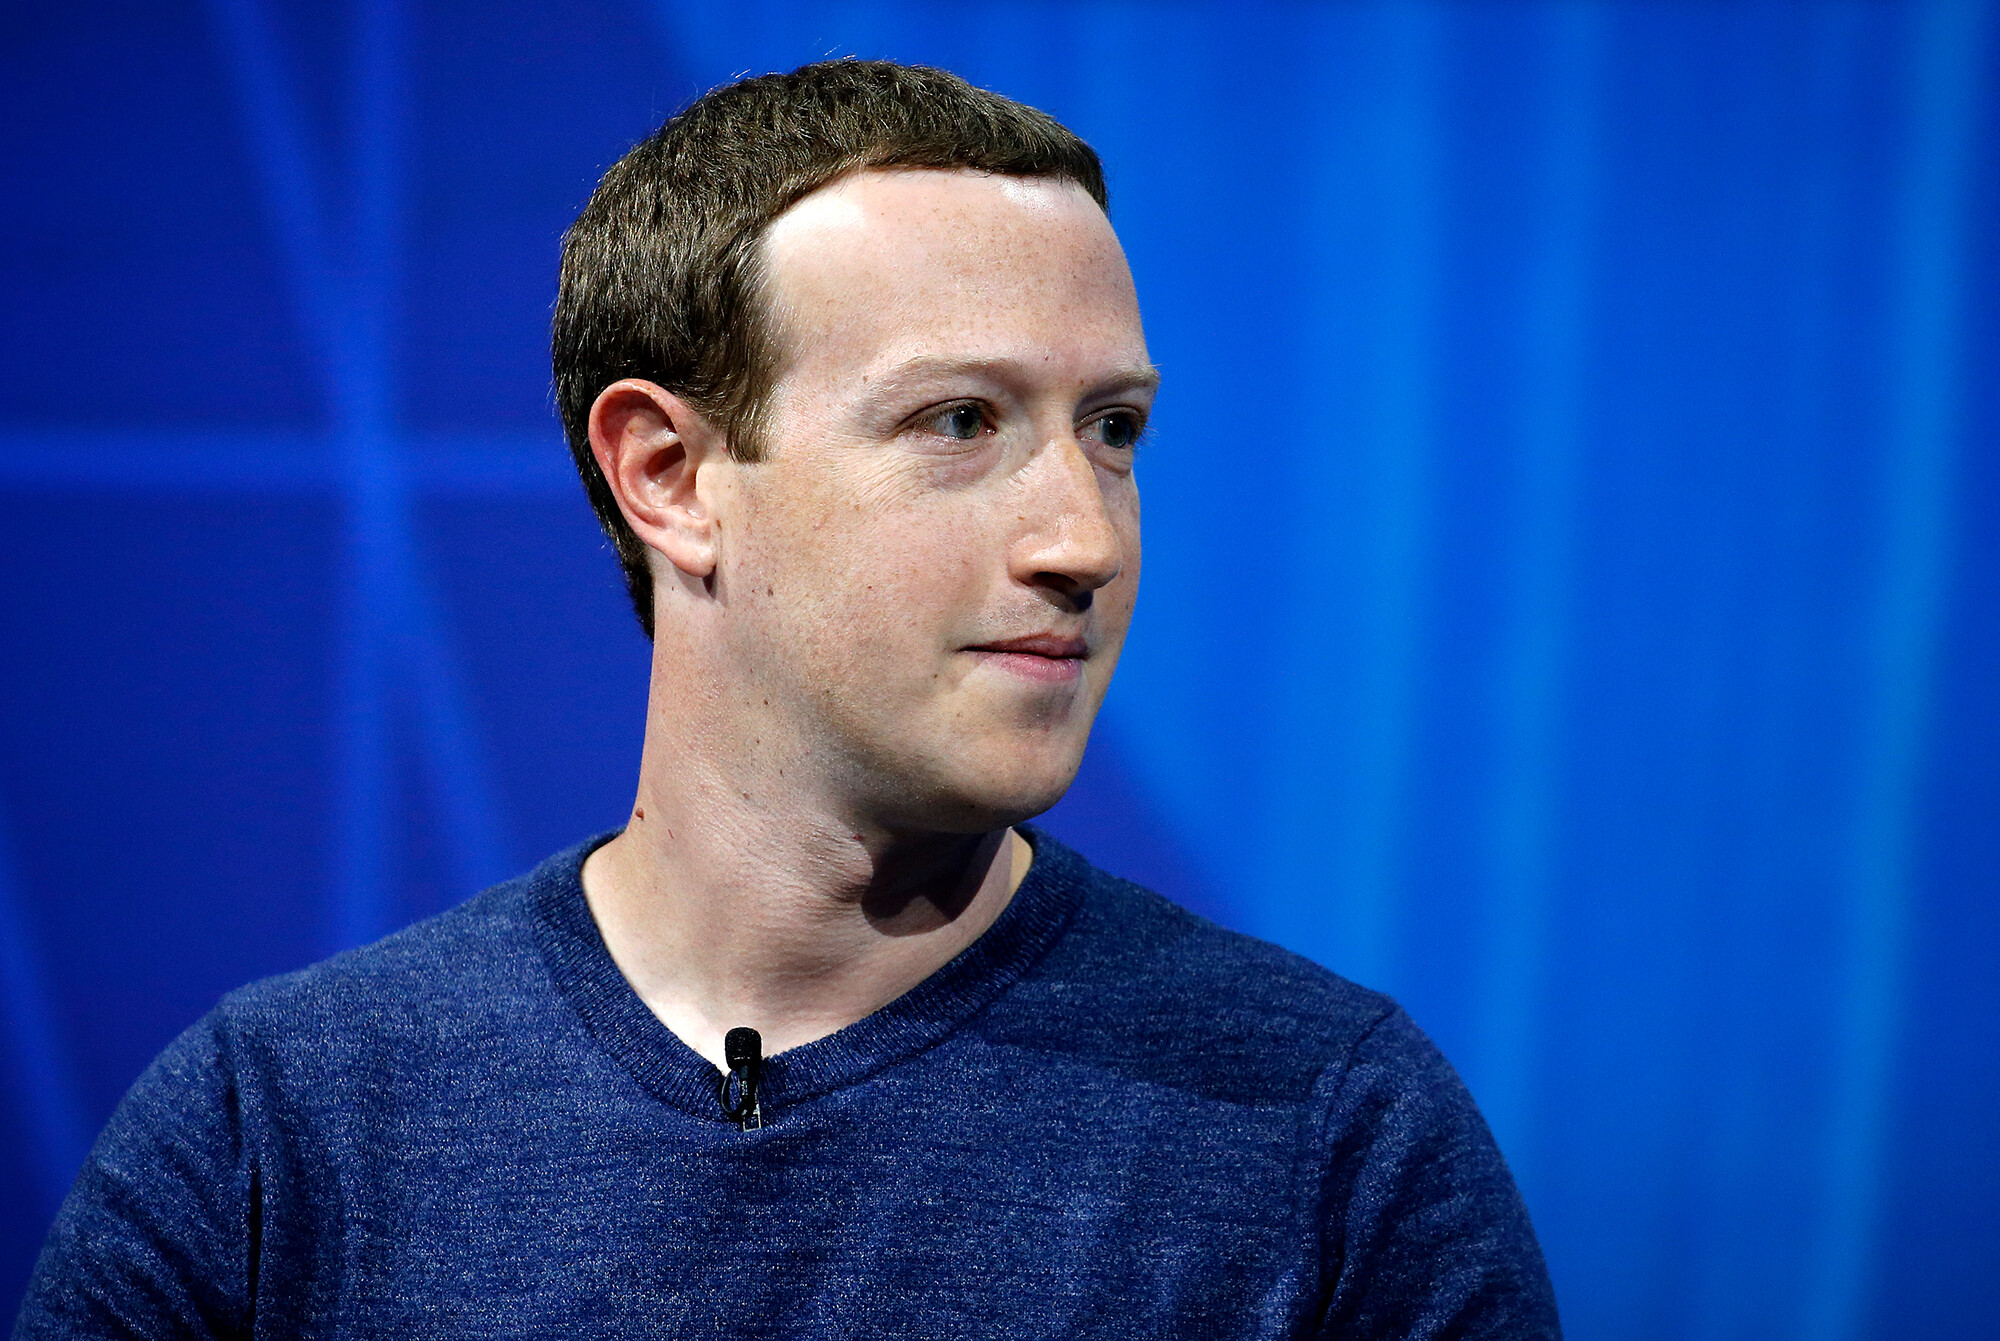 <i>Chesnot/Getty Images</i><br/>Facebook on July 28 reported revenue of nearly $29.1 billion for the three months ended June 30